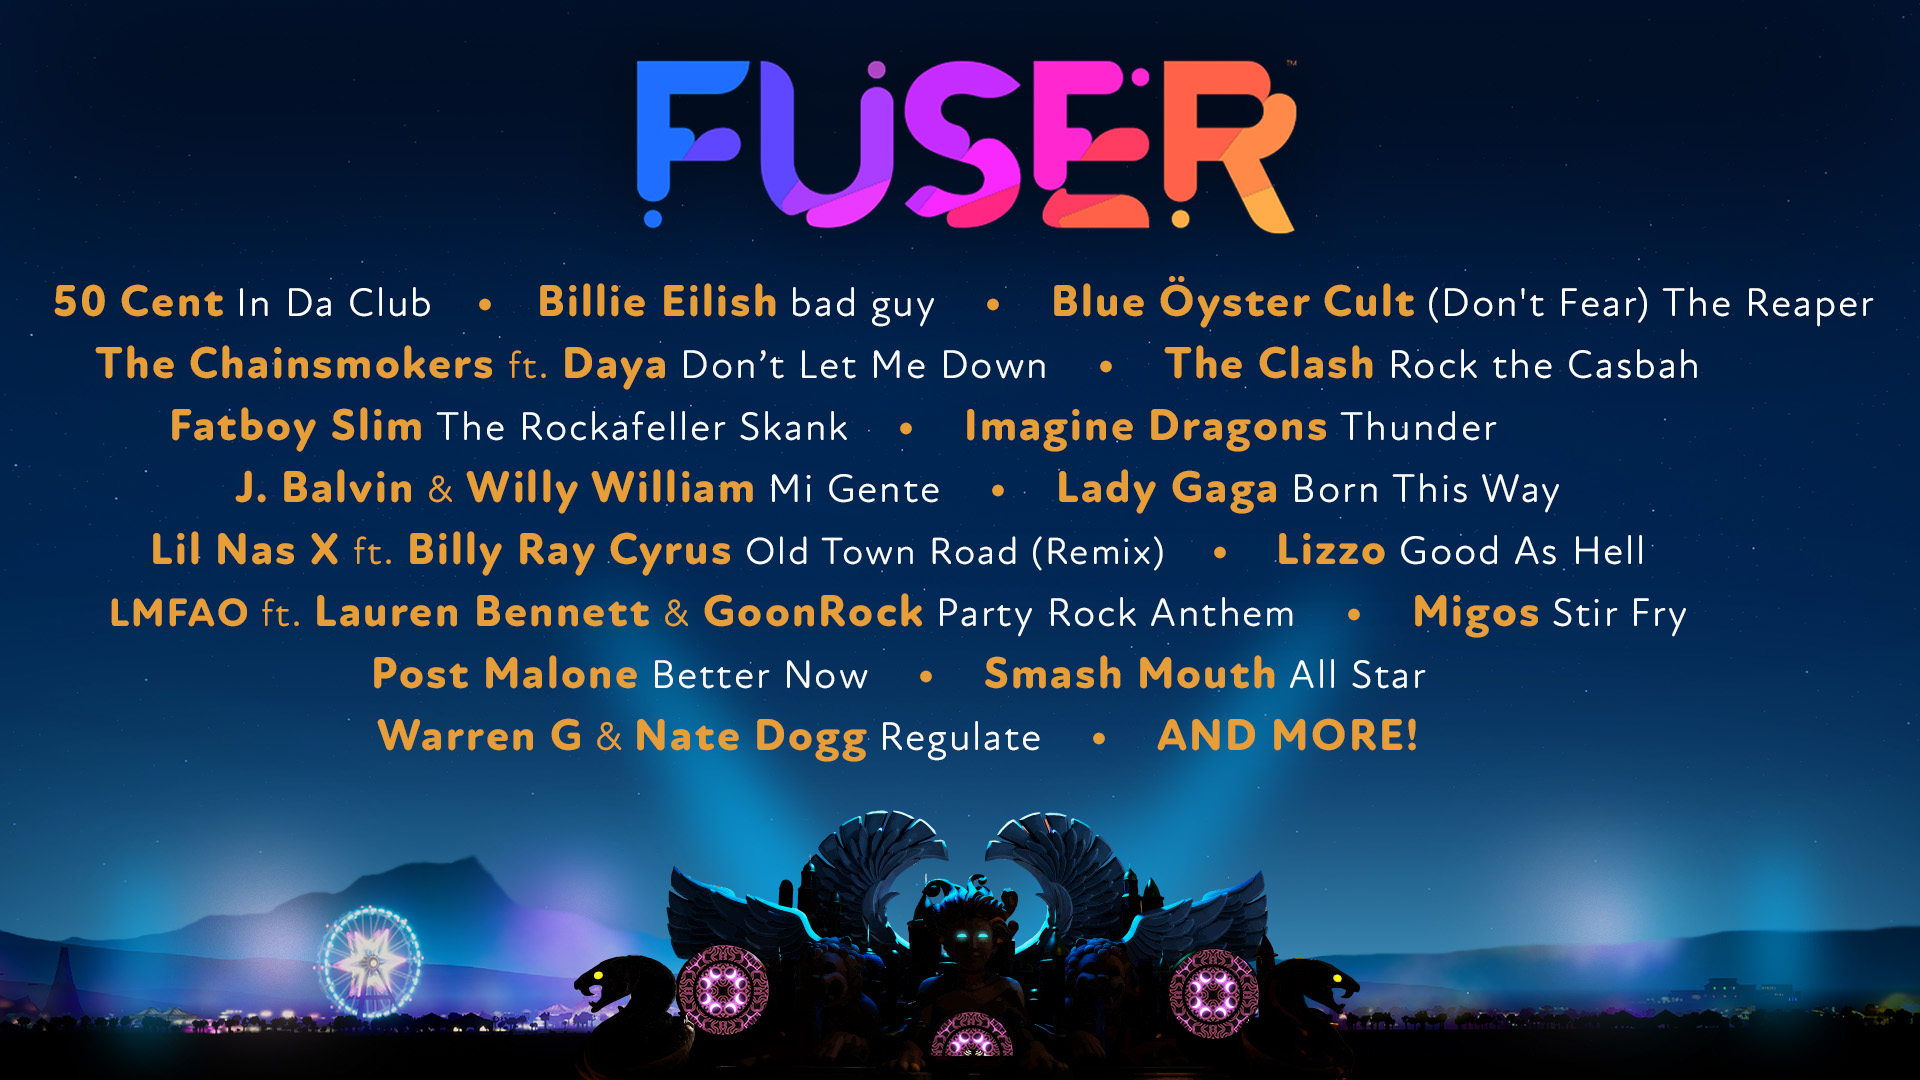 Revealed today are the first 16 licensed songs from the 100+ songs on the Fuser soundtrack, representing a wide range of genres and generations of music, with more reveals to come!